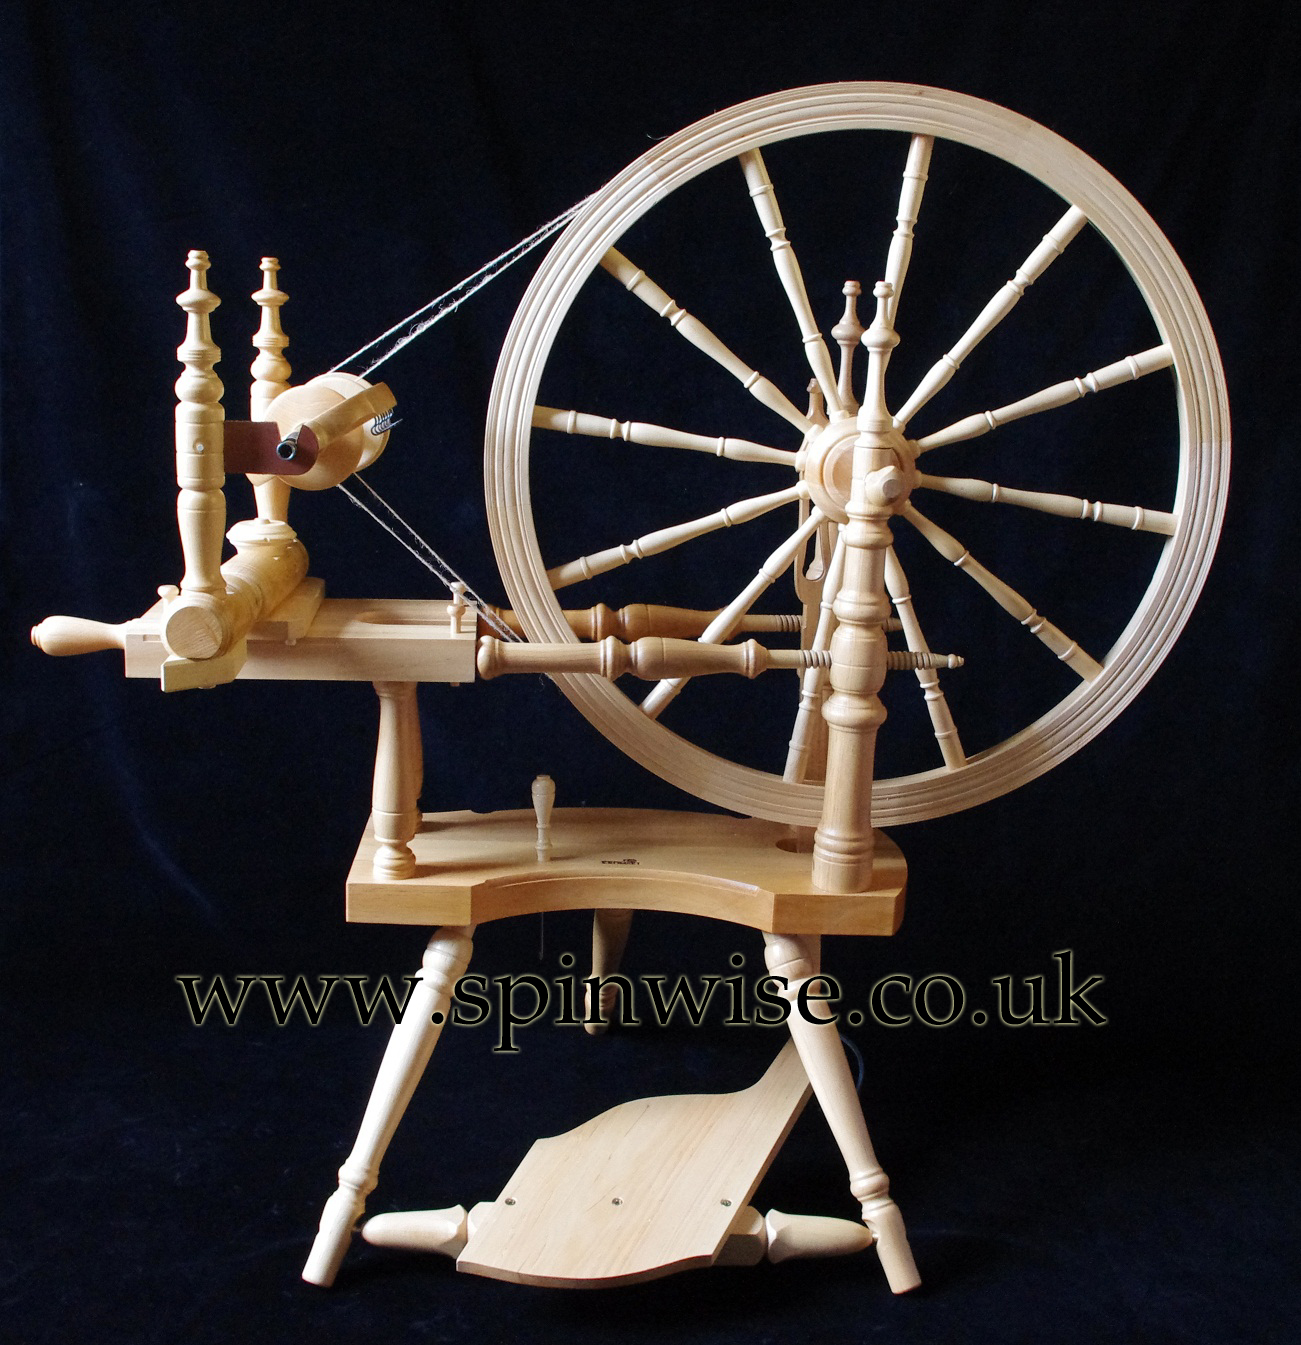 Kromski Polonaise double drive spinning wheel